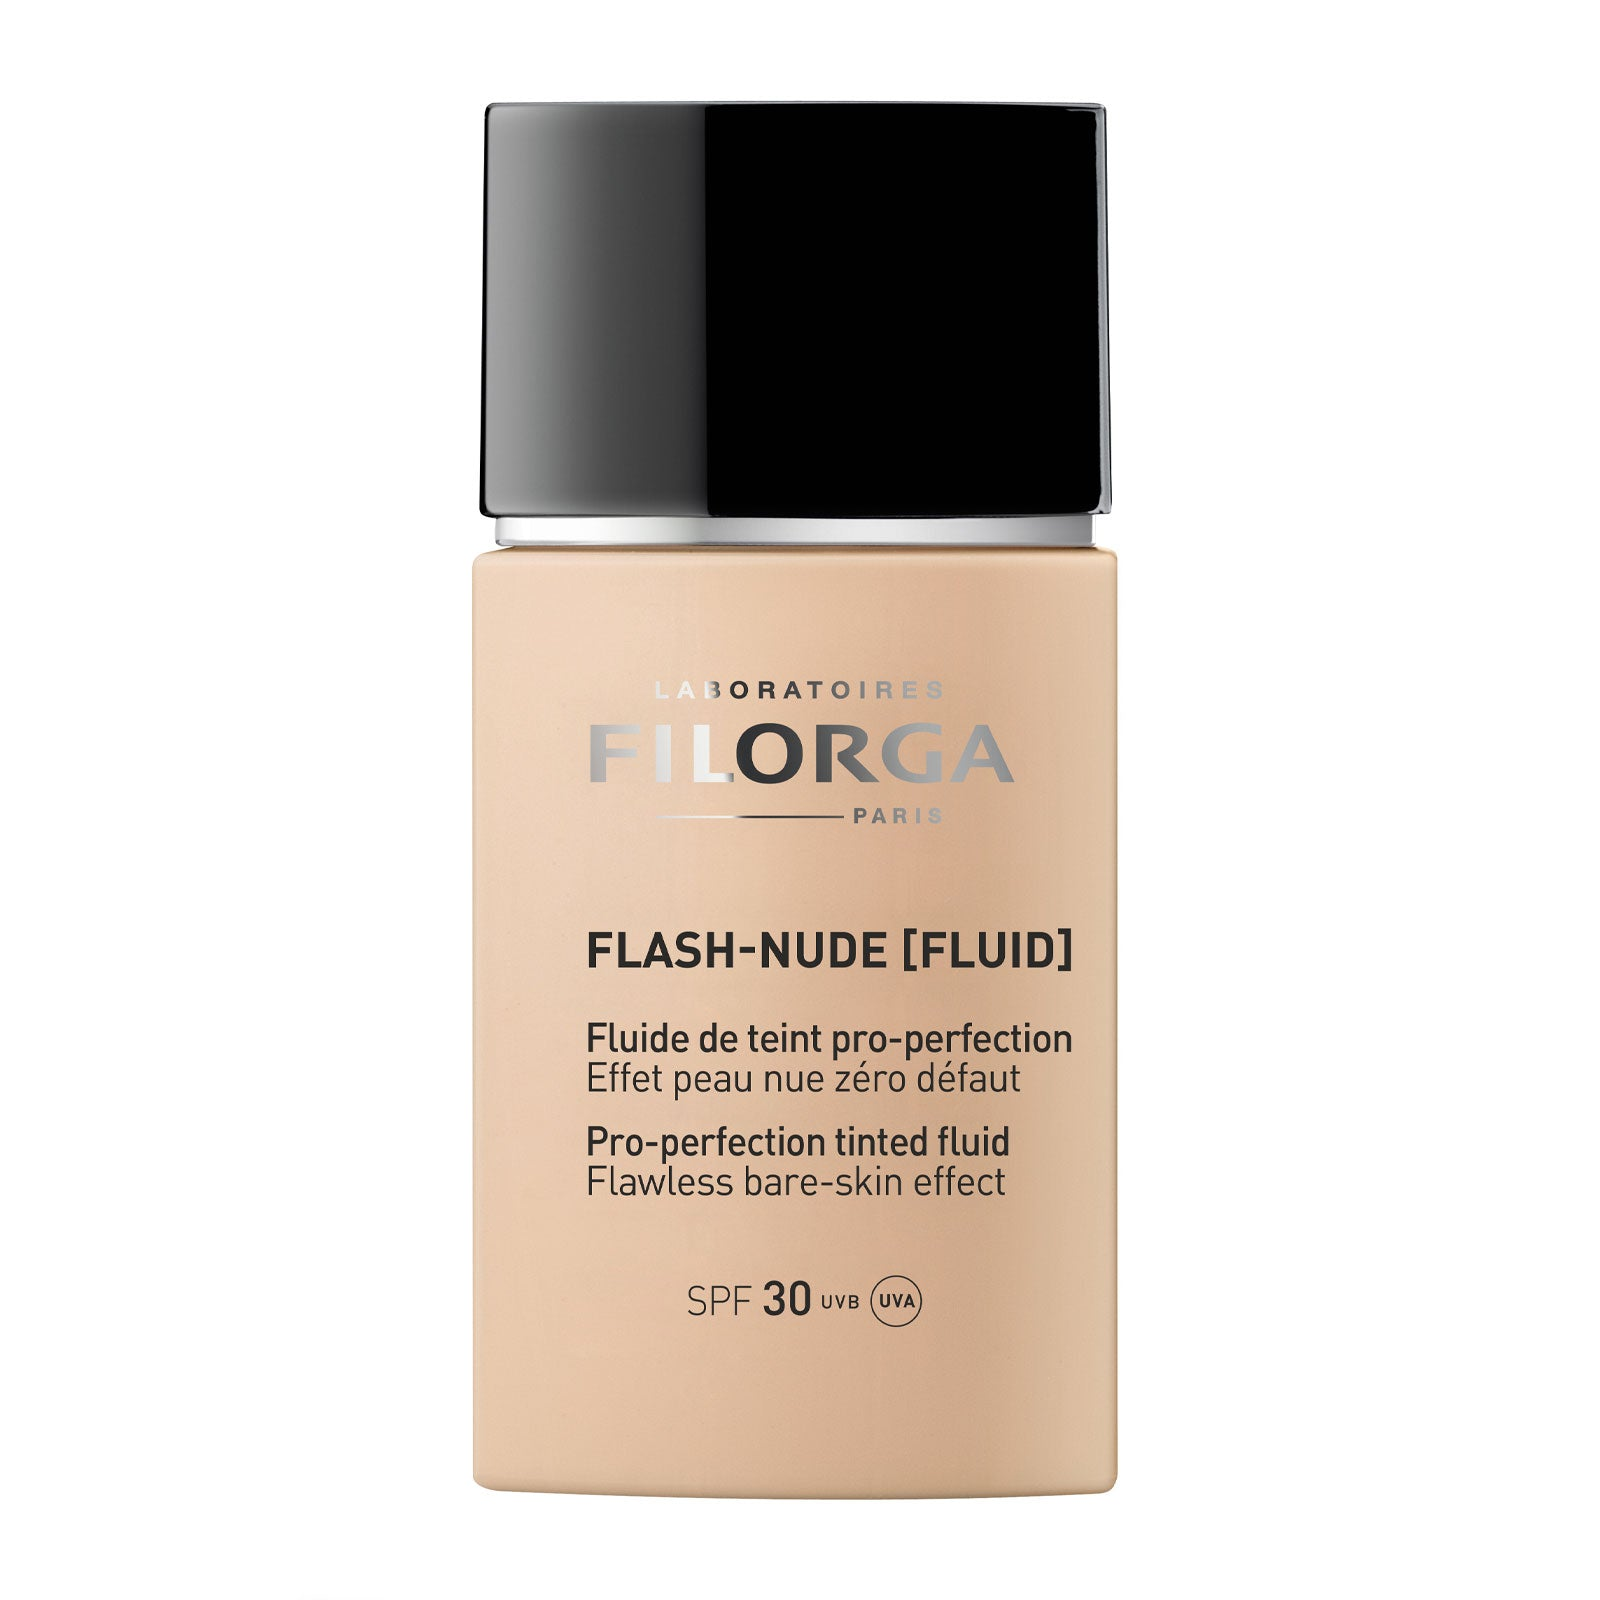 FILORGA Flash Nude Pro-Perfection Tinted Fluid Flawless Bare Skin Effect 30ml